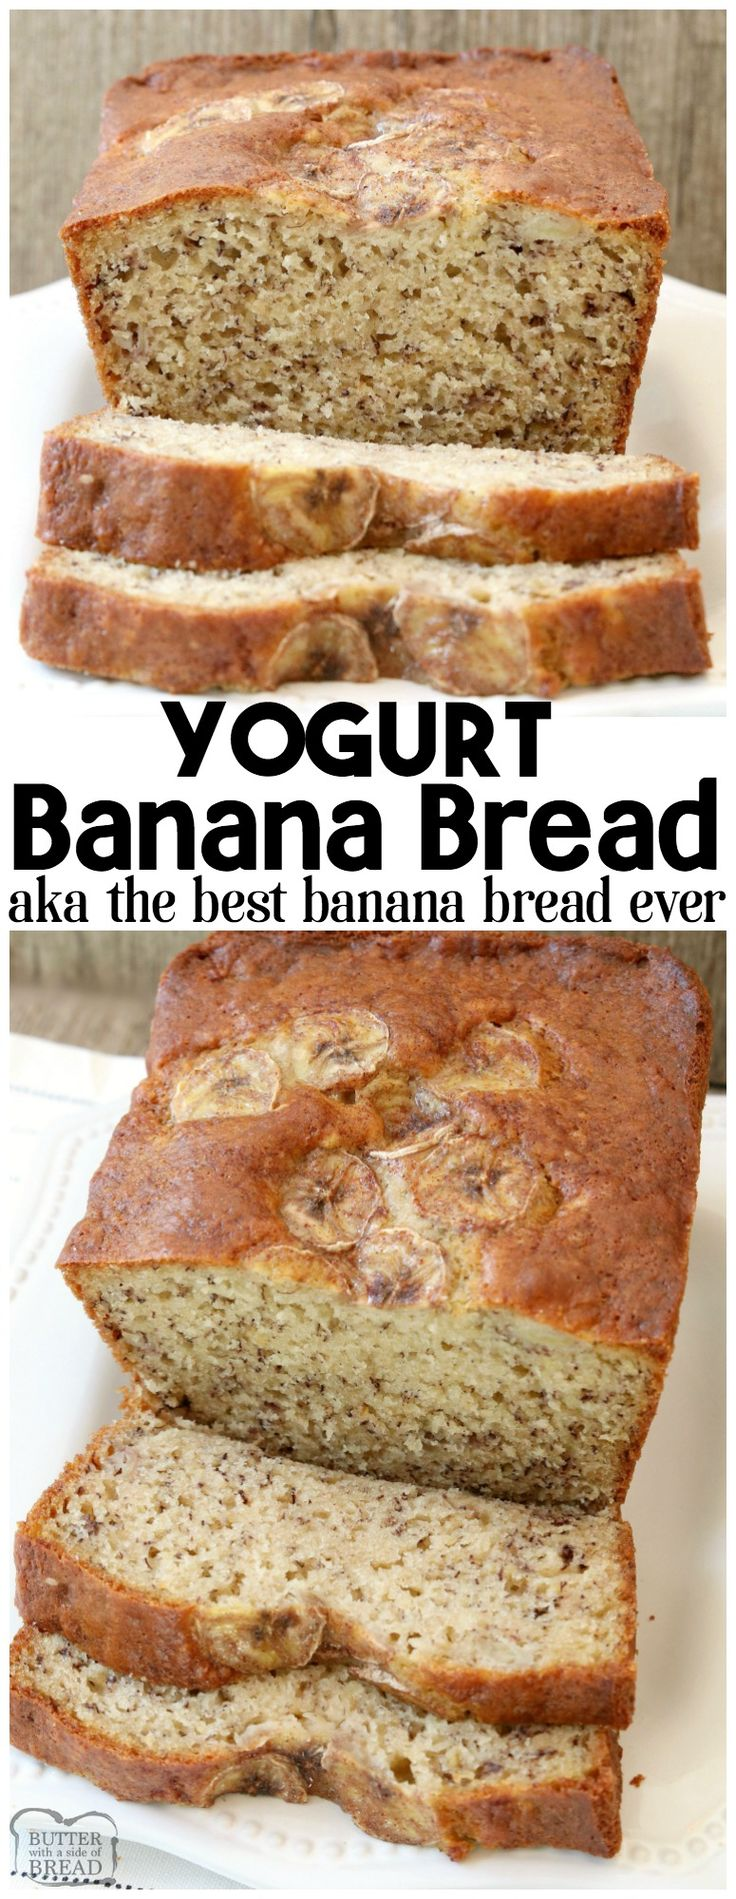 Yogurt Banana Bread is the BEST banana bread recipe ever! Made with yogurt and ripe bananas, it's super easy to make, light, moist & has the best flavor. Easiest & BEST #banana #bread I've EVER tasted! SAVE THIS ONE! #recipe #bananabread #baking #quickbread #breadrecipe from Butter With A Side of Bread